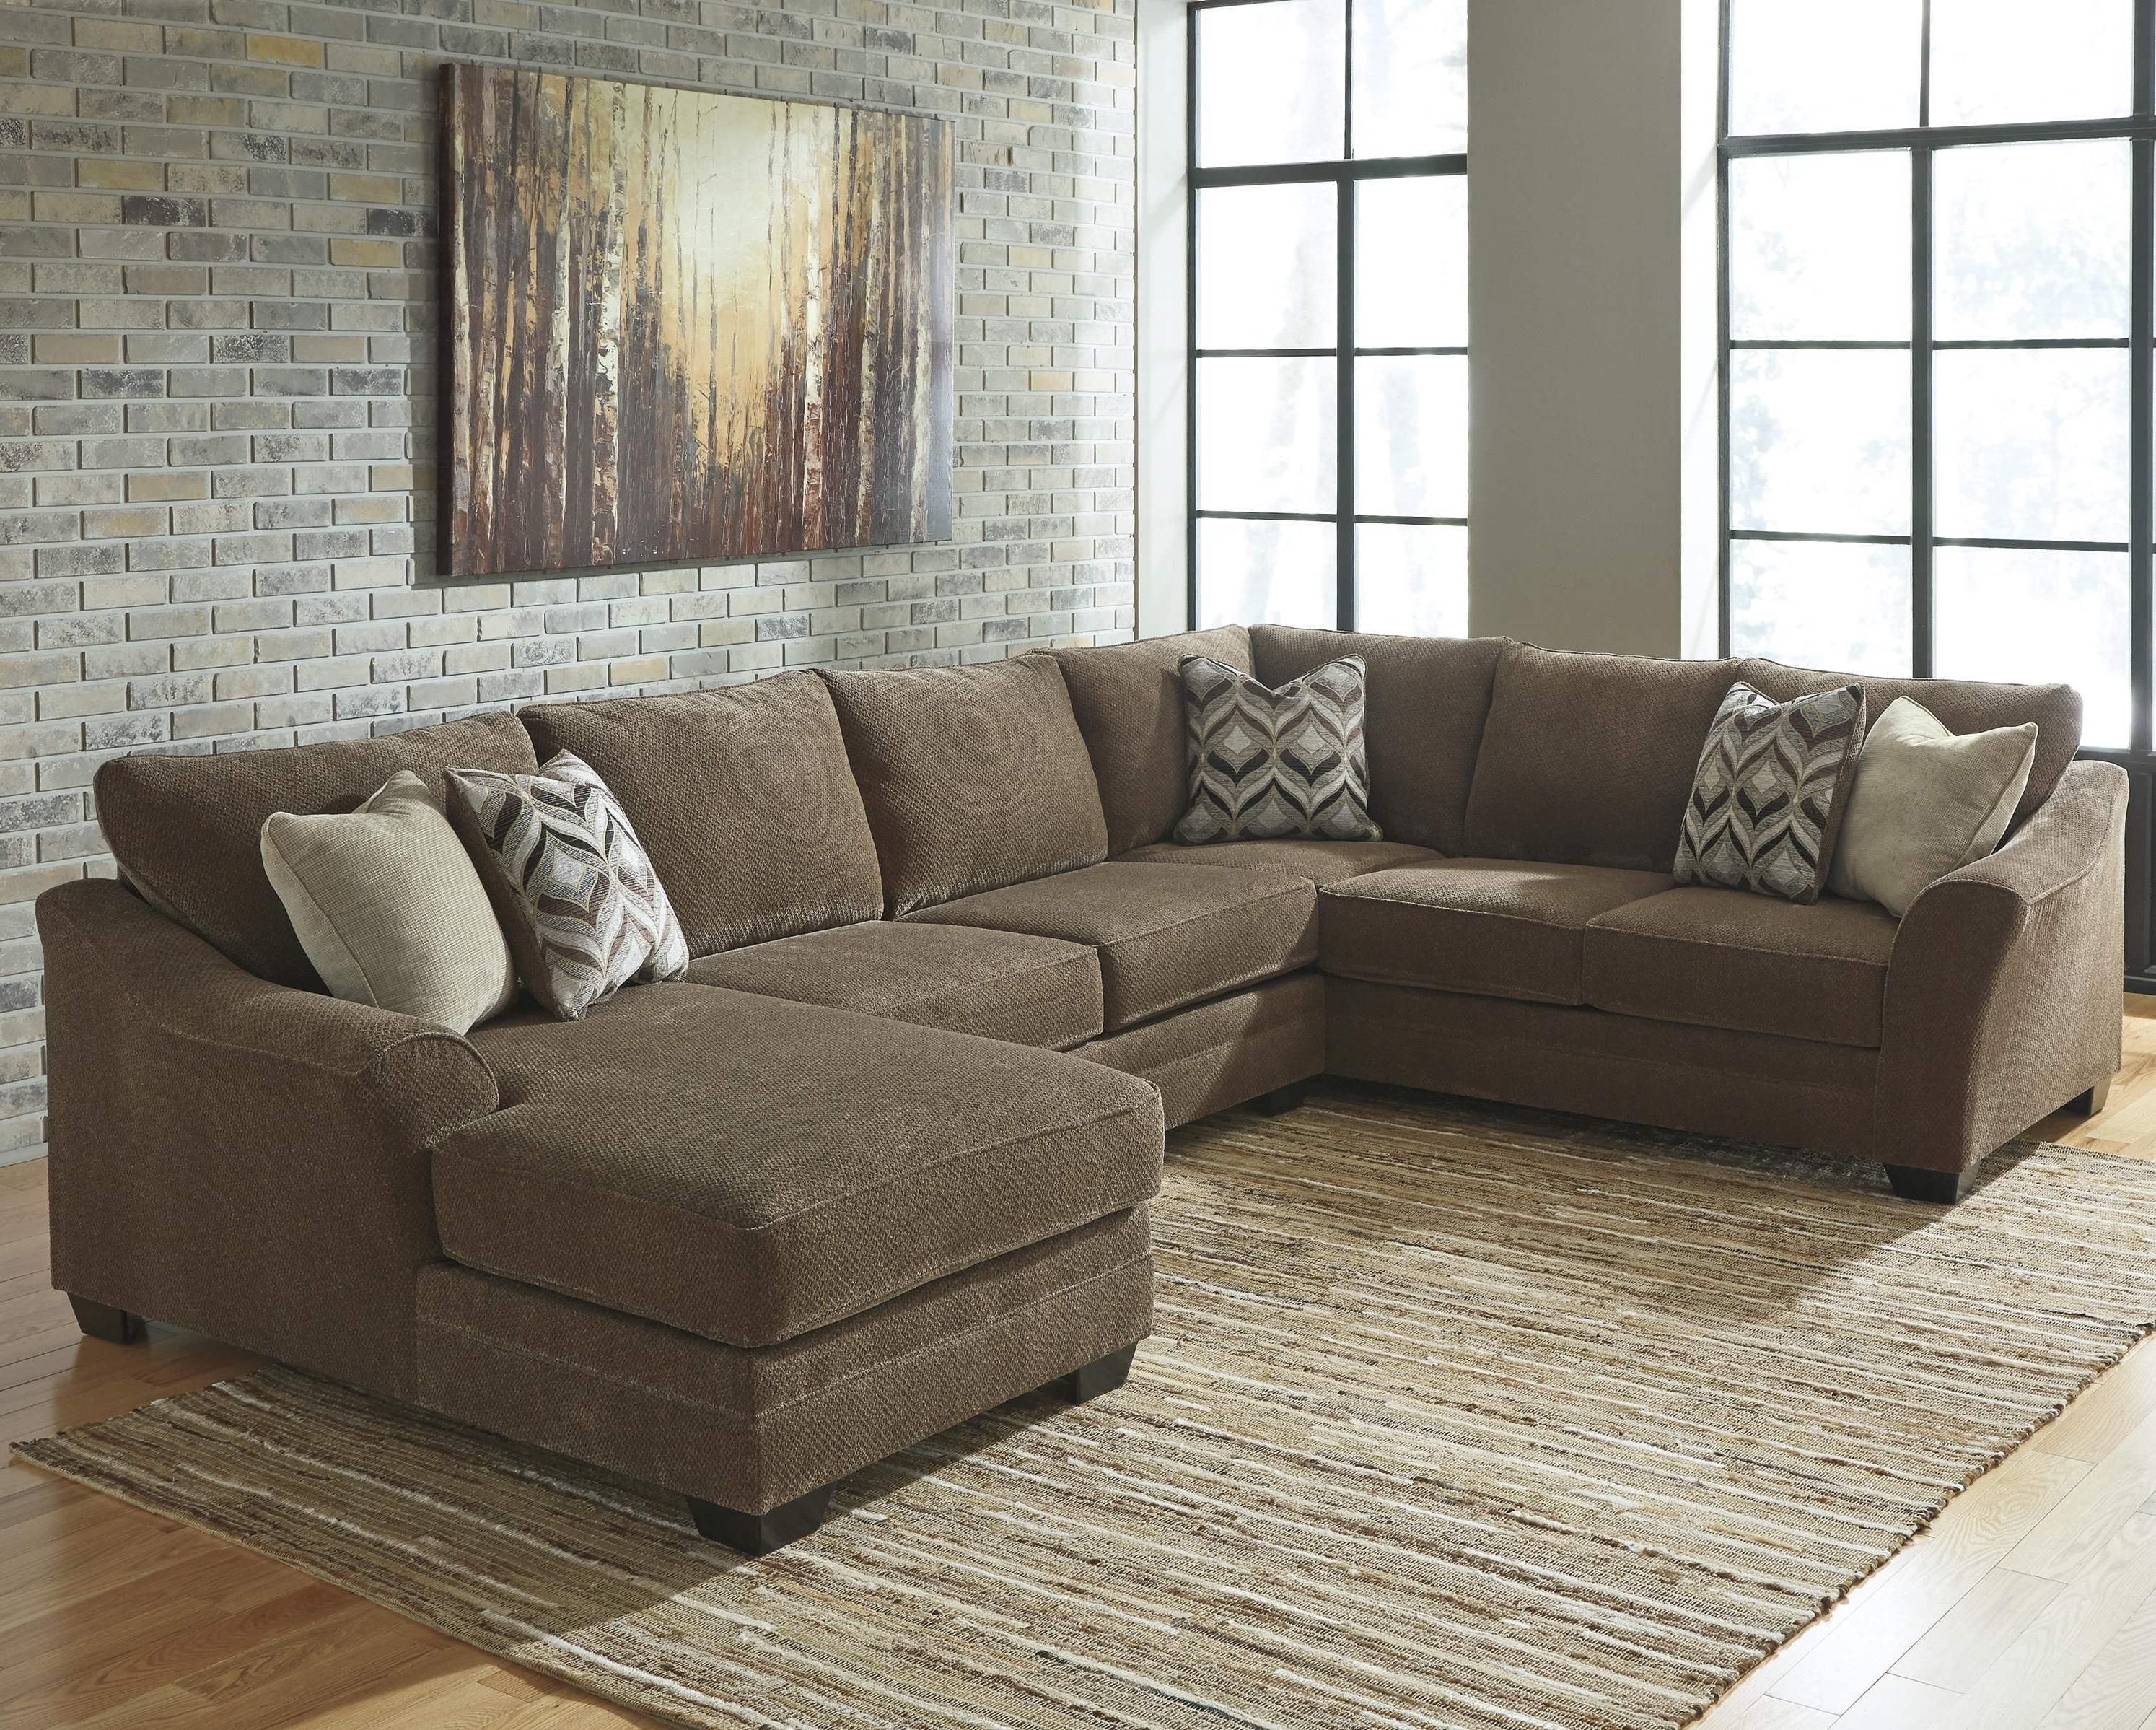 Most Recently Released Justyna Contemporary 3 Piece Sectional With Right Chaise For Murfreesboro Tn Sectional Sofas (View 16 of 20)